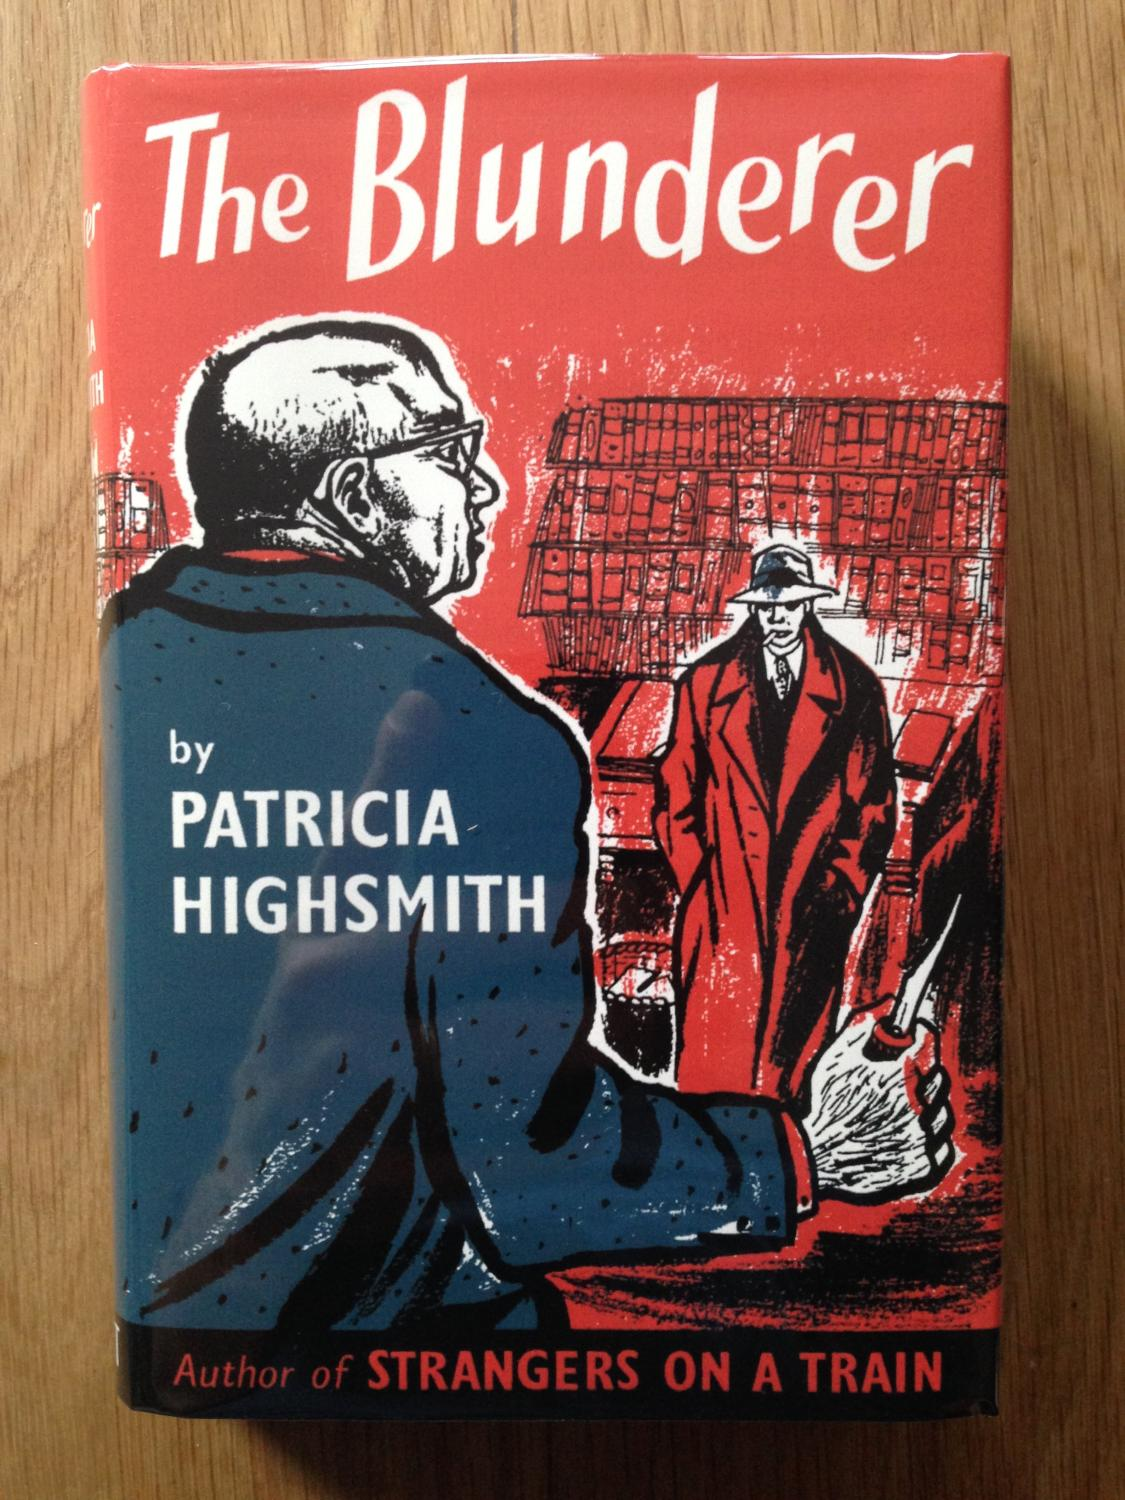 UK edition of The Blunderer